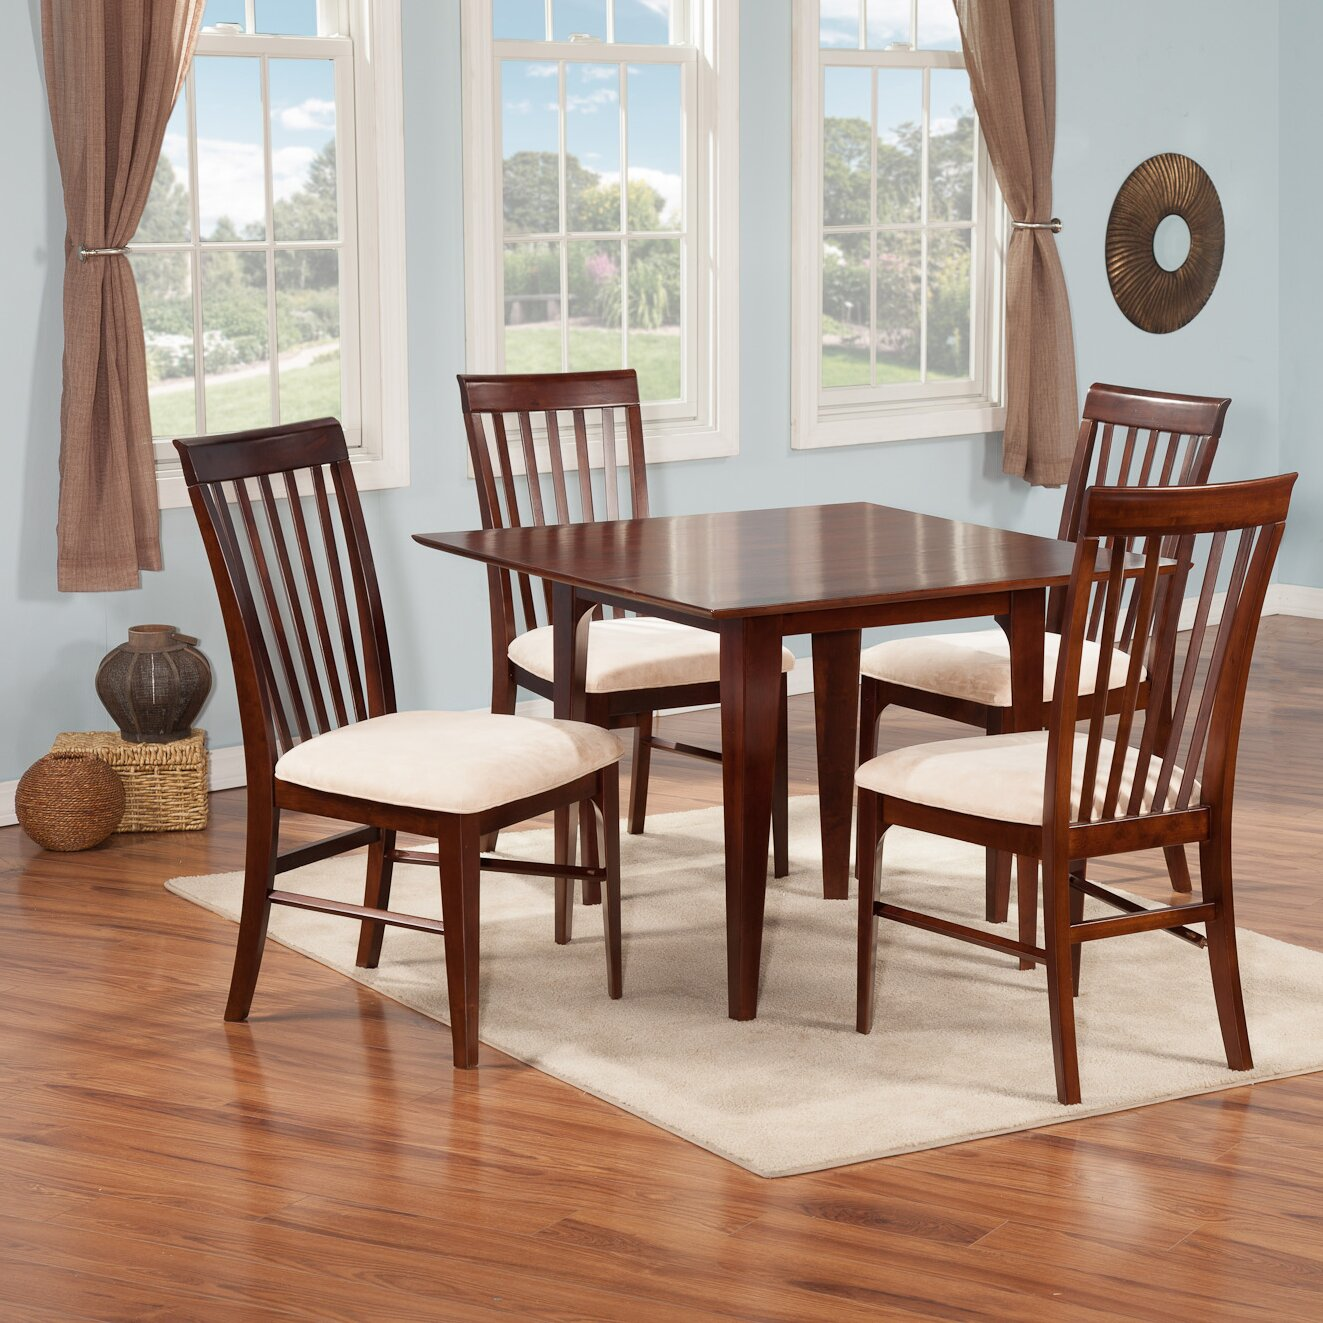 Atlantic furniture montreal 5 piece dining set reviews for Dining room tables montreal